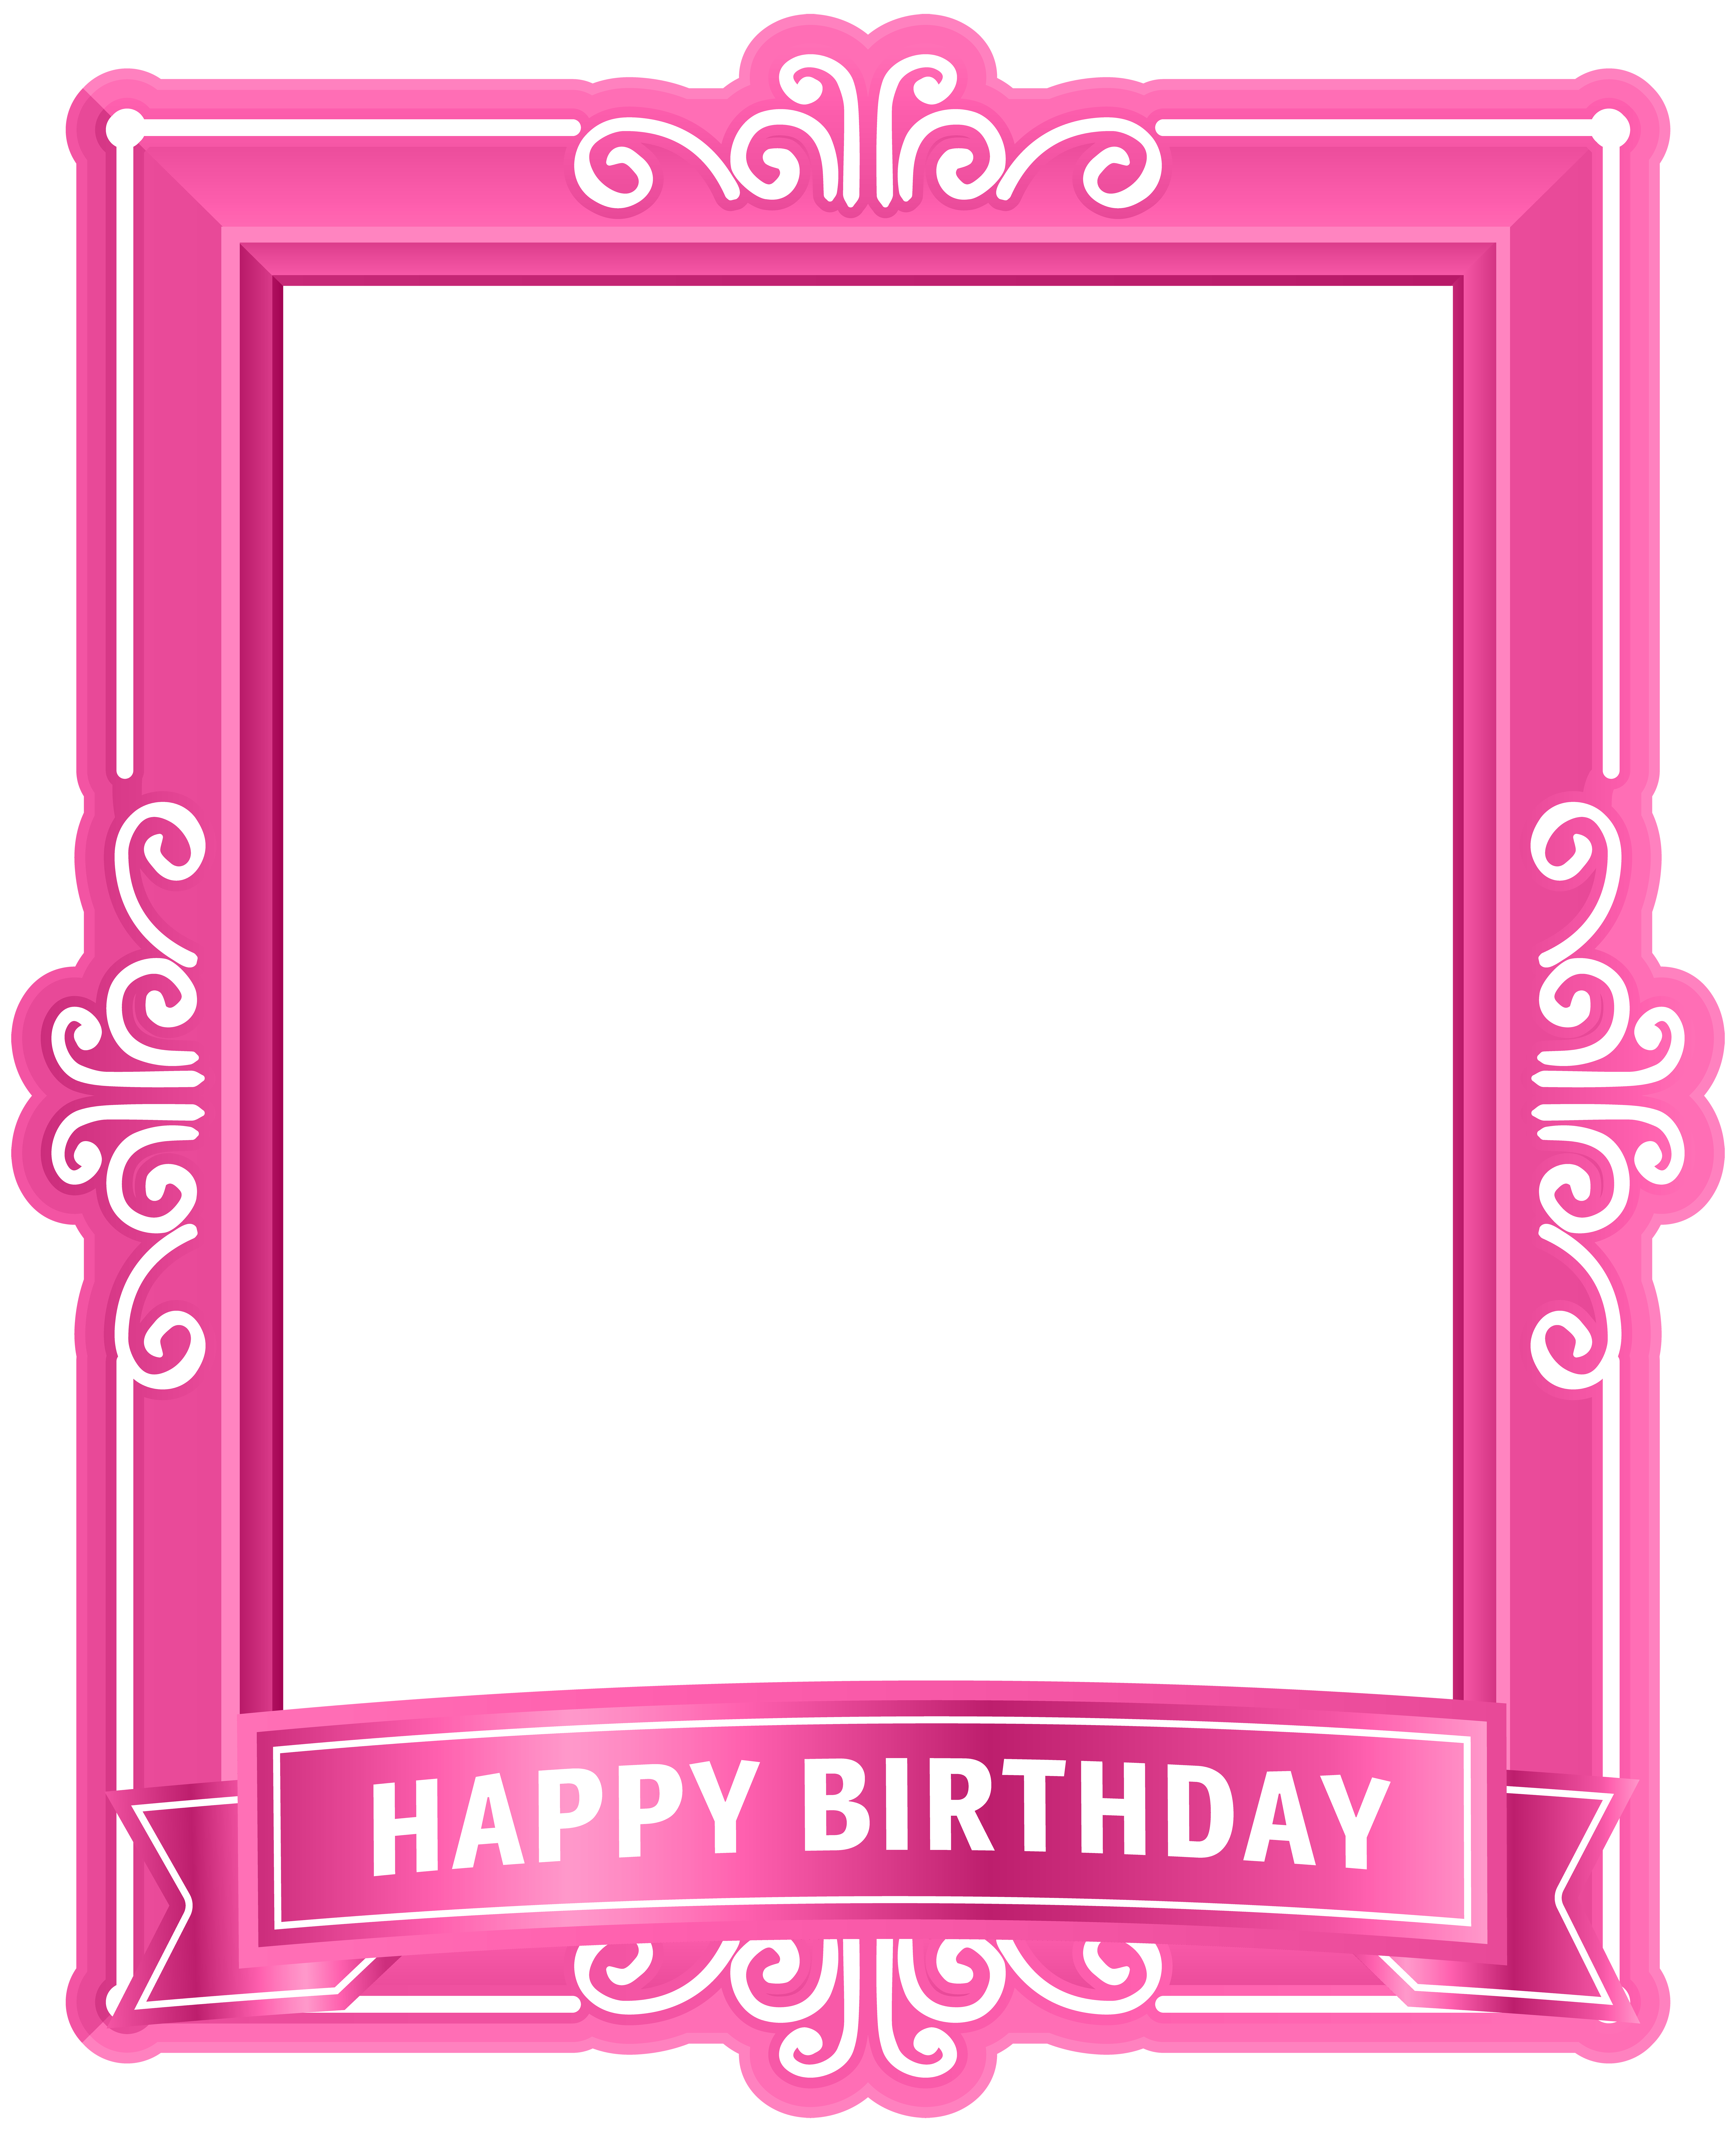 Birthday happy to you. Frames clipart cake